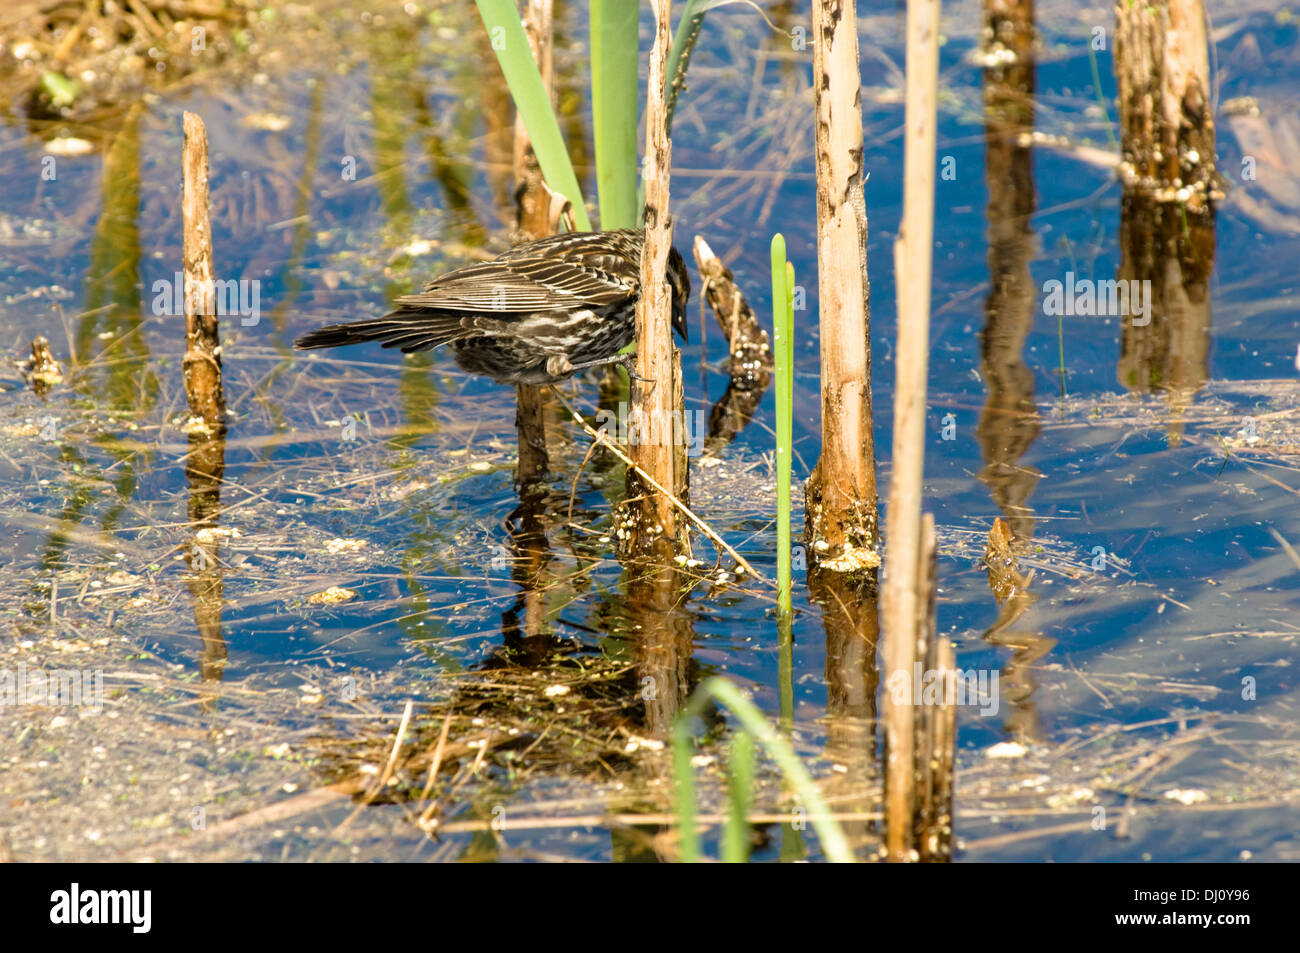 A thrasher bird searches for food in the reeds of a marsh at the Volo Bog in northern Illinois, USA. - Stock Image